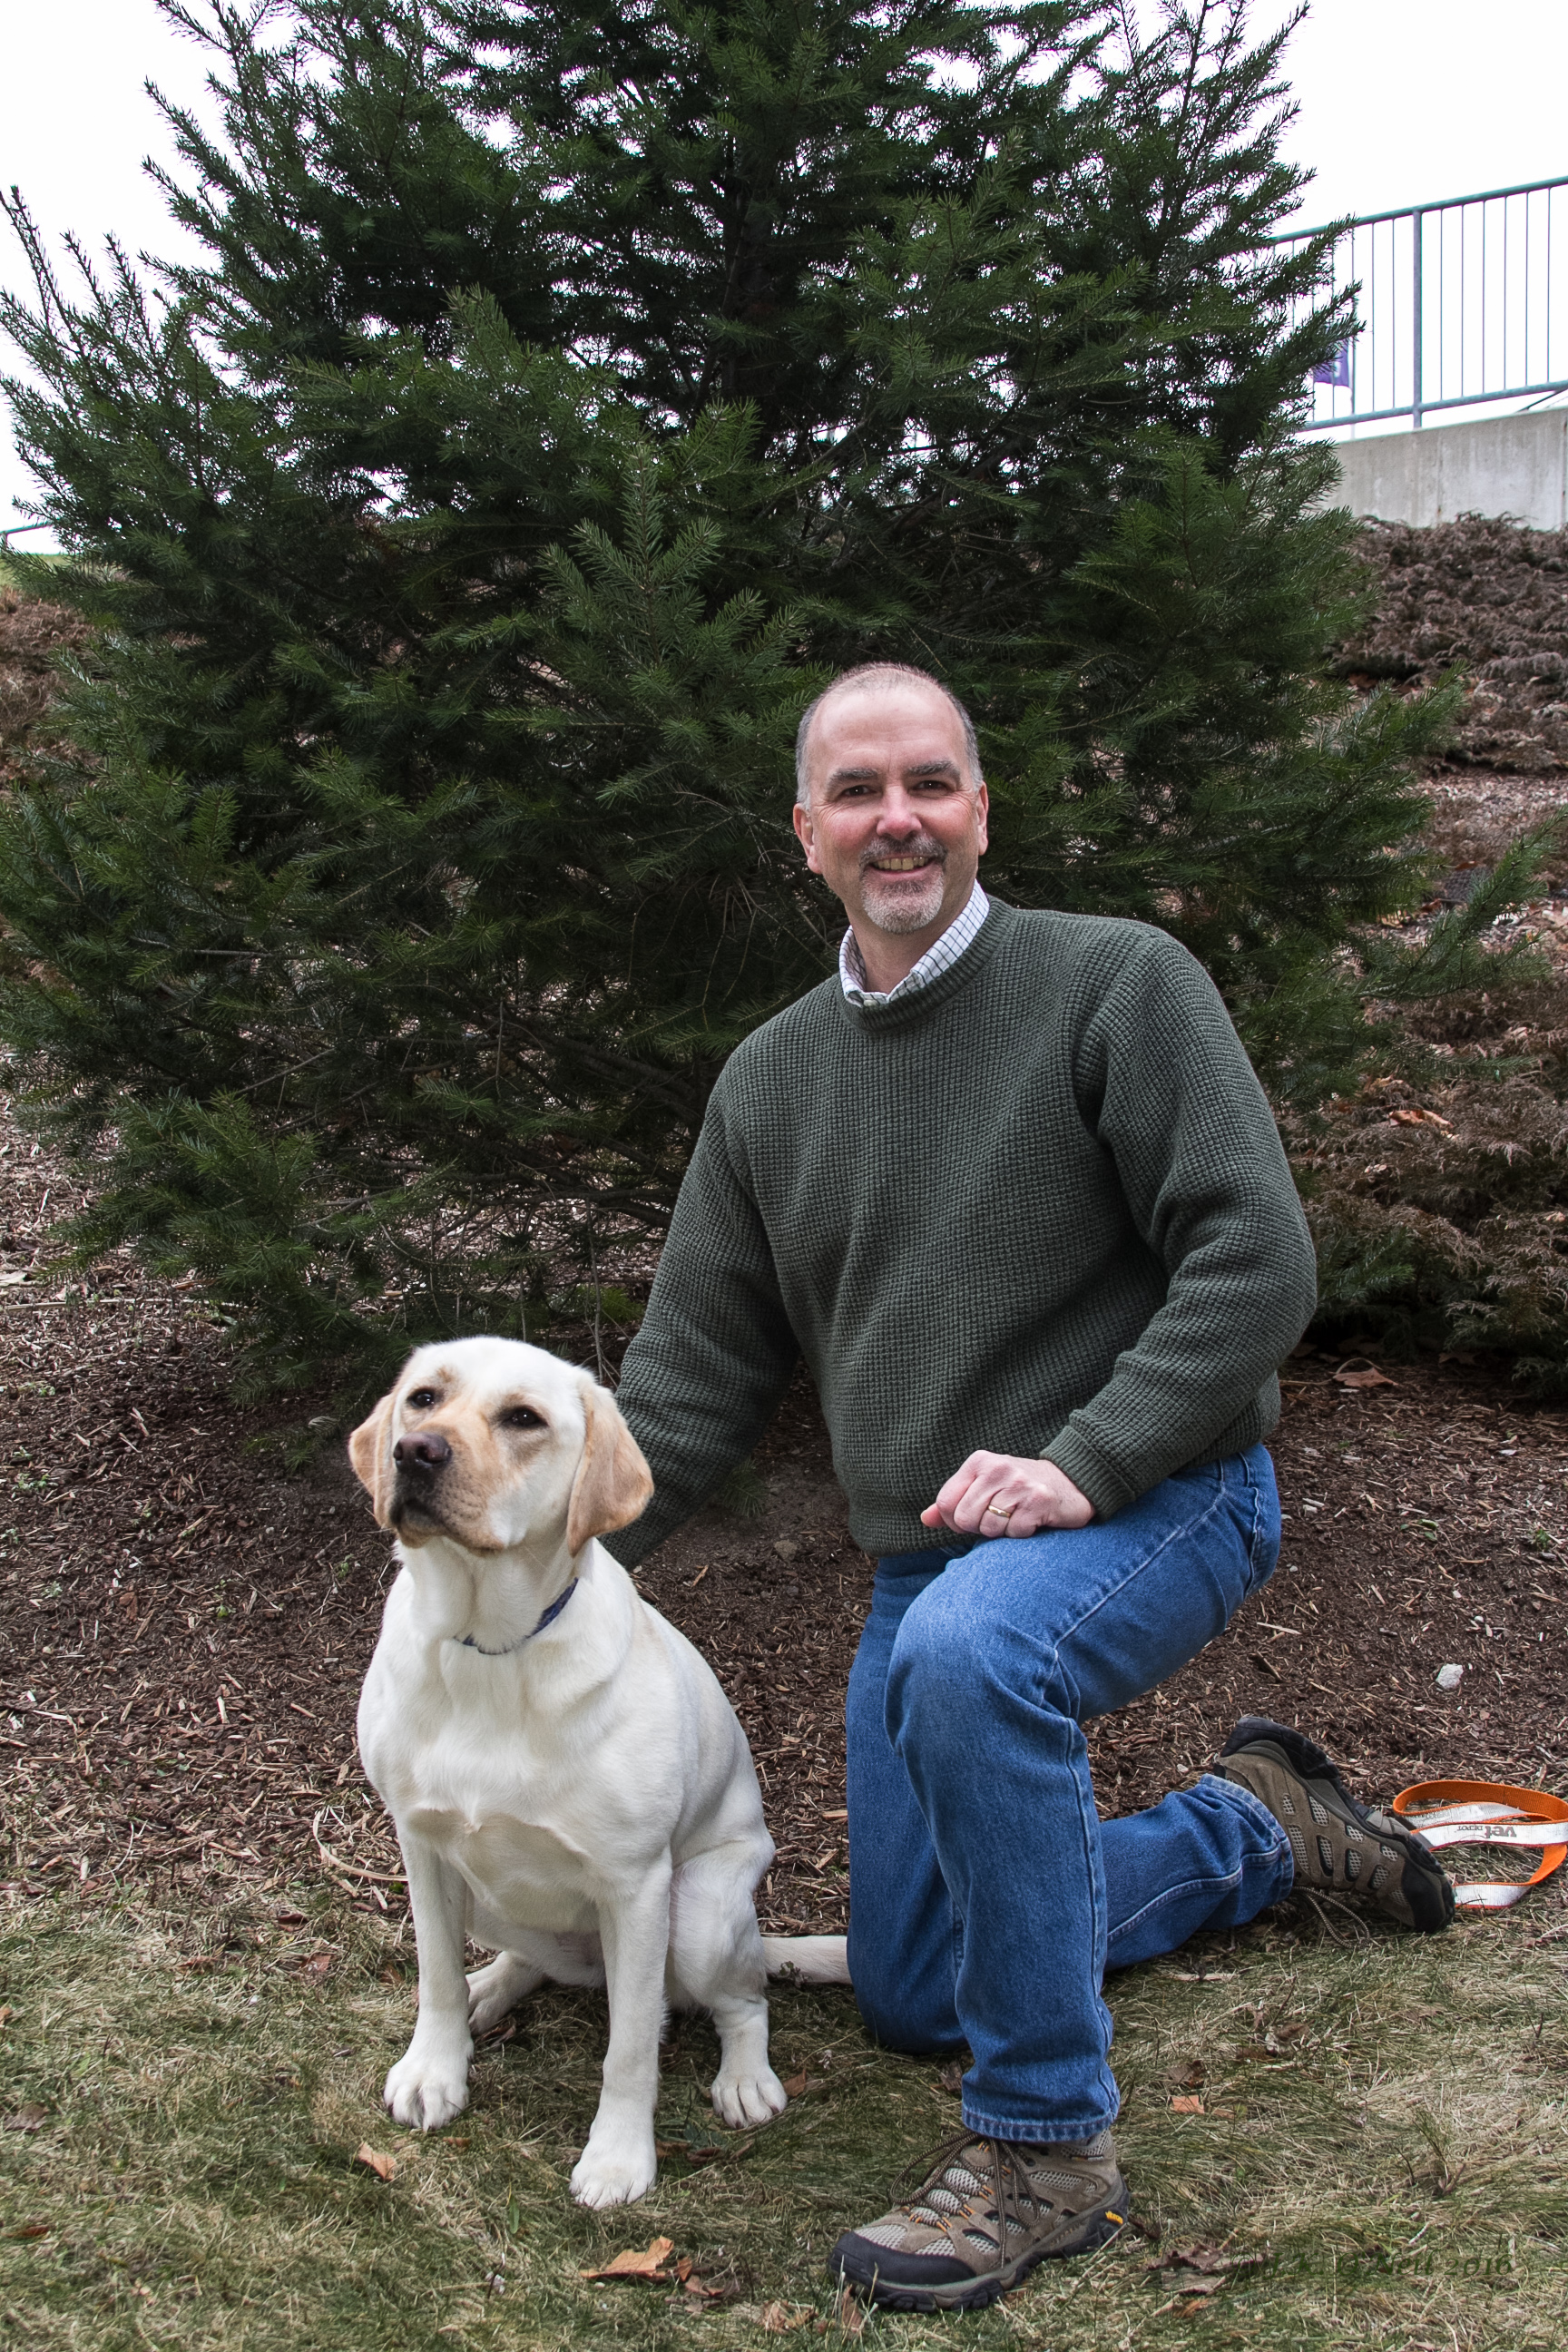 Dr. Townson the department chair kneeling with his yellow lab Zoe